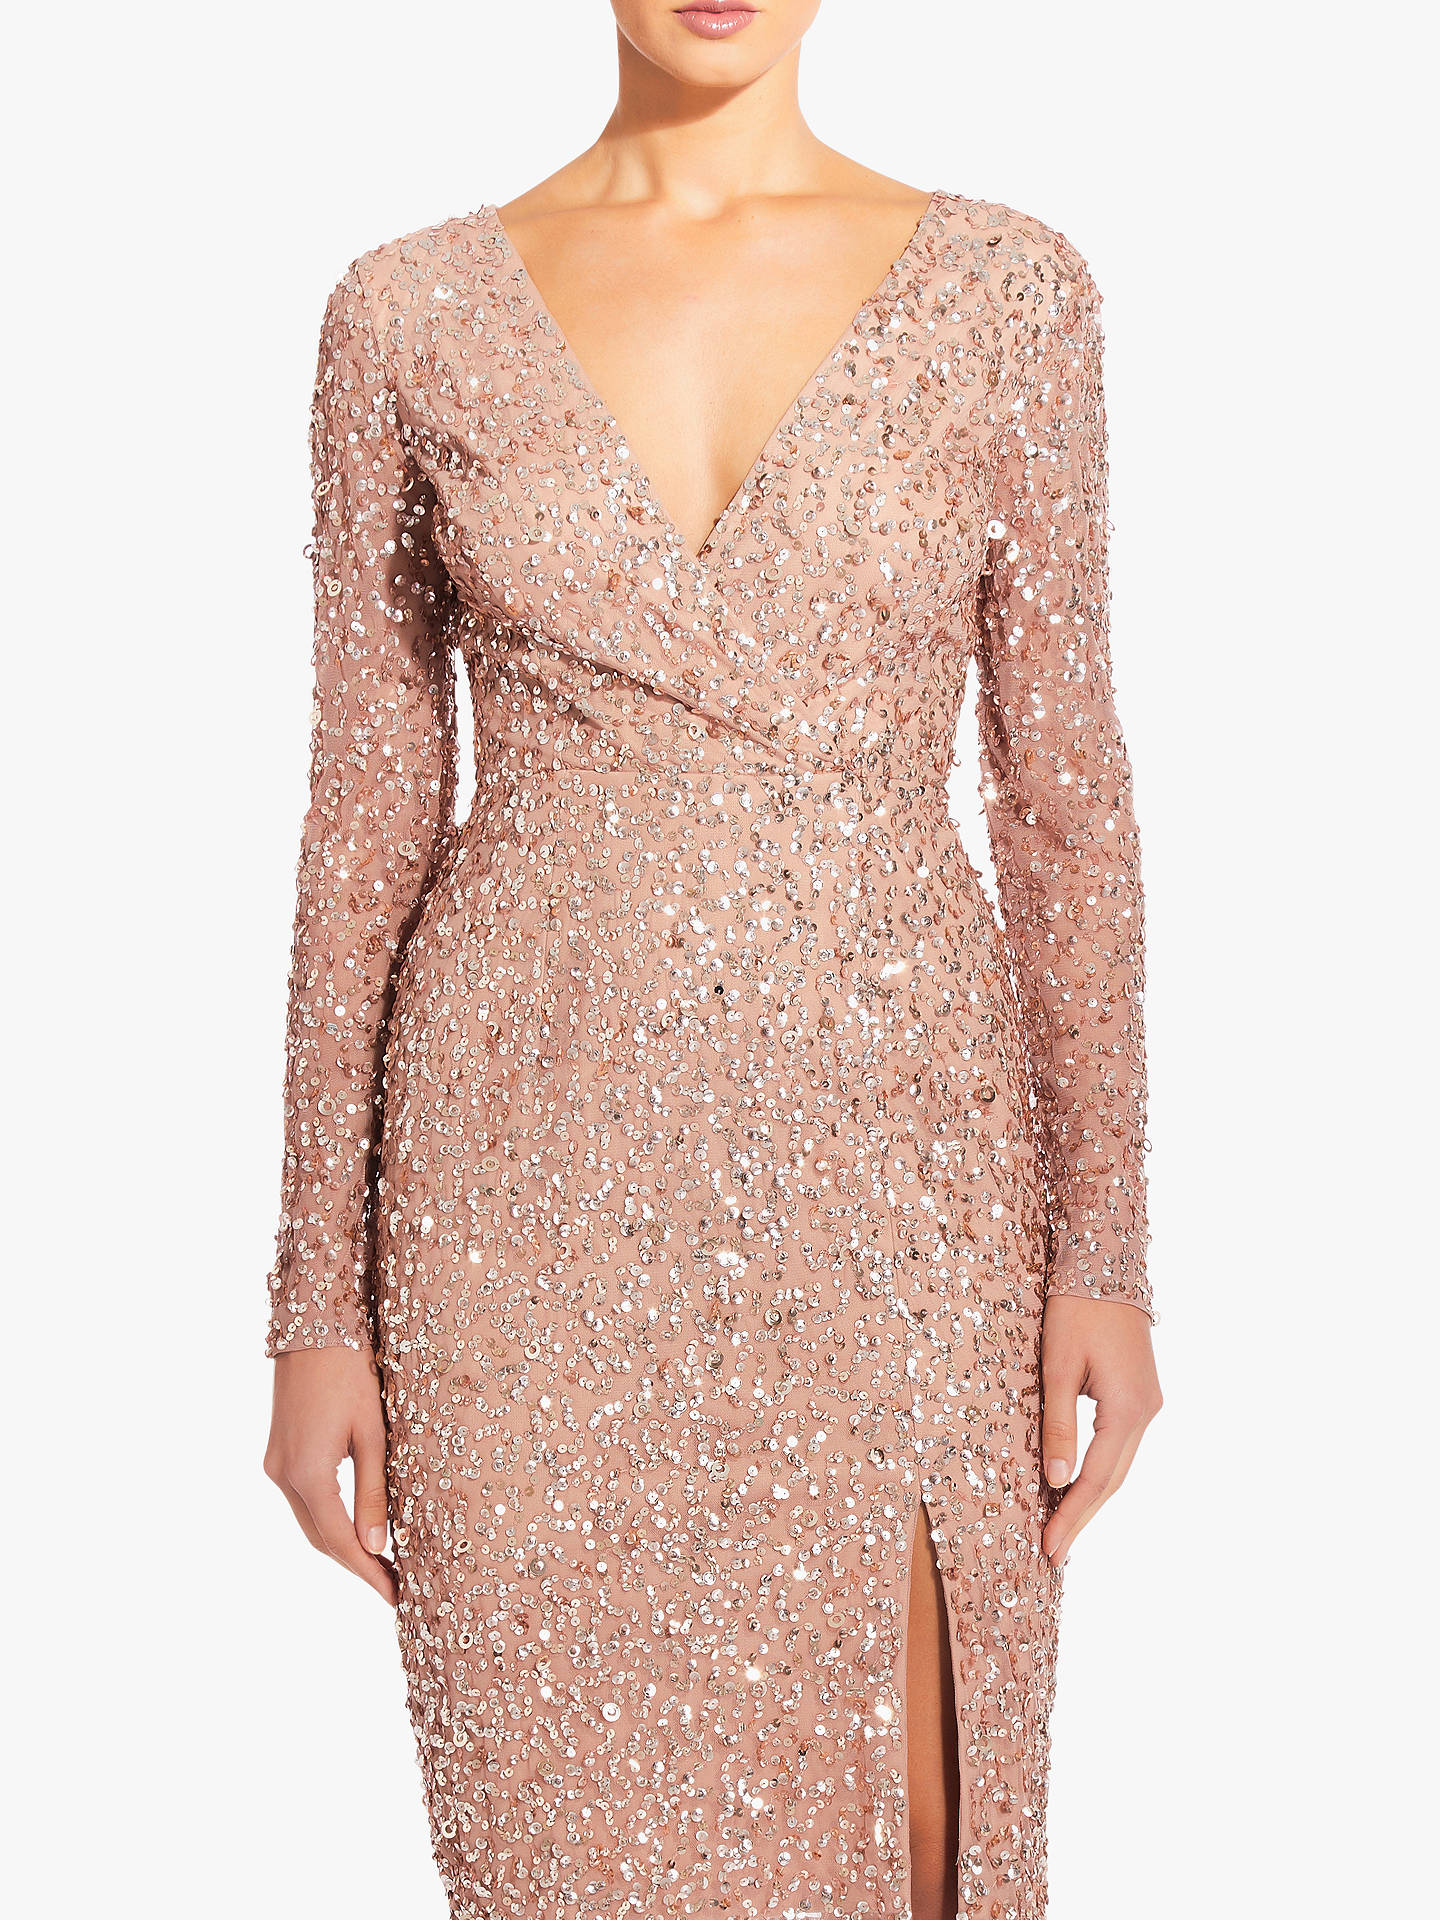 005c70a1029 Buy Adrianna Papell Plus Size Beaded Wrap Dress